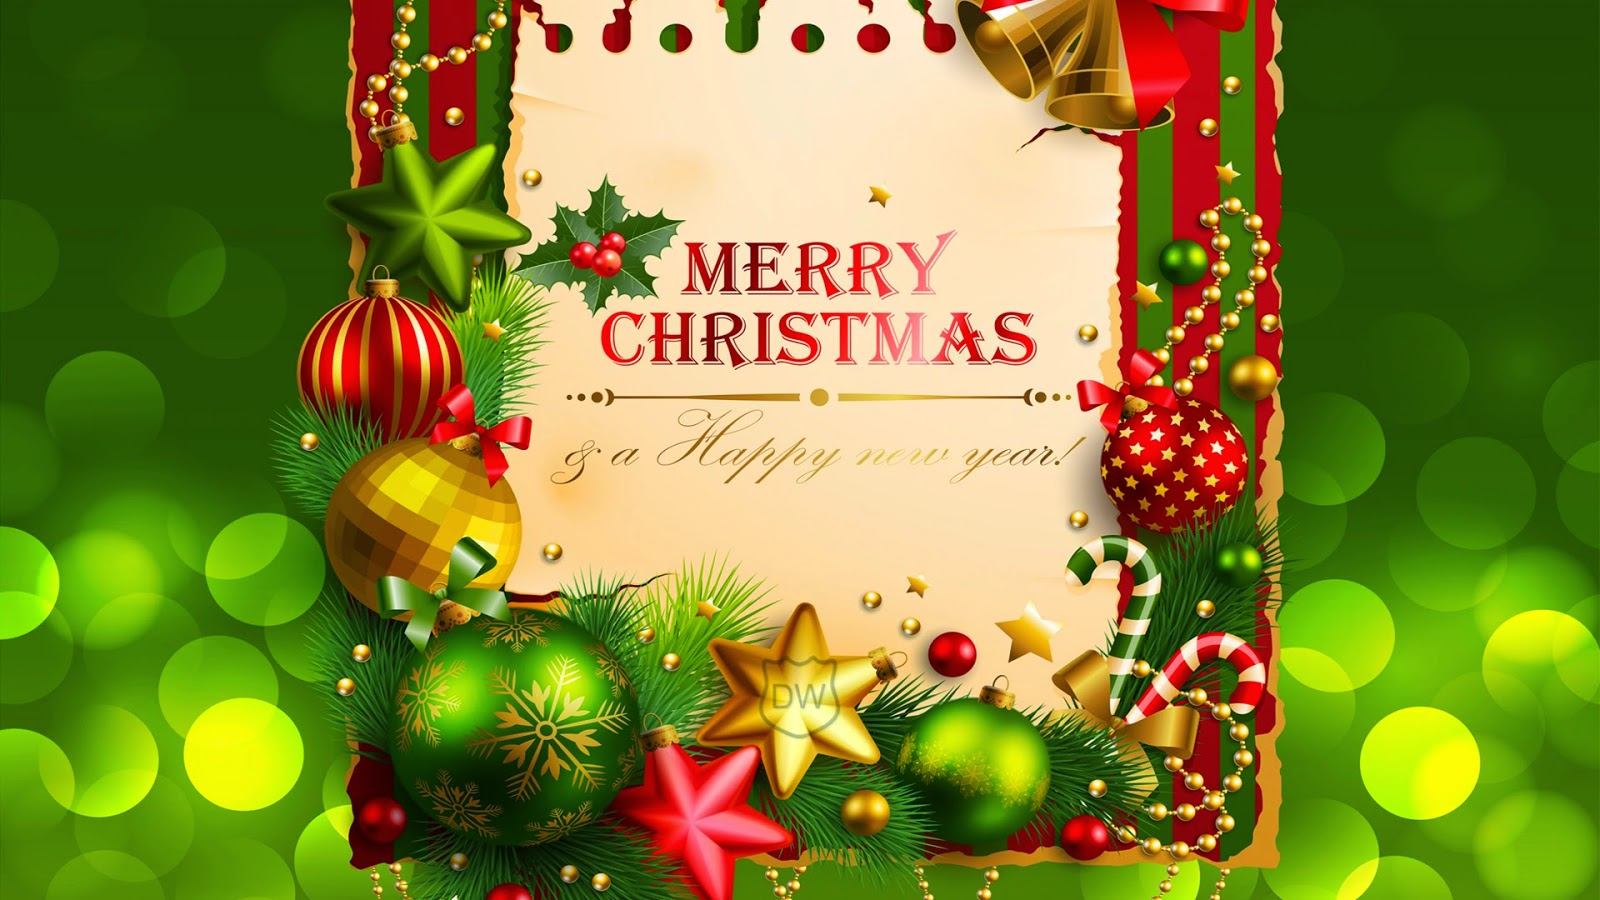 Popular Wallpaper Love Merry Christmas - Merry-Christmas-HD-Images-Wallpapers-Free-Download-5  Photograph_505793.jpg